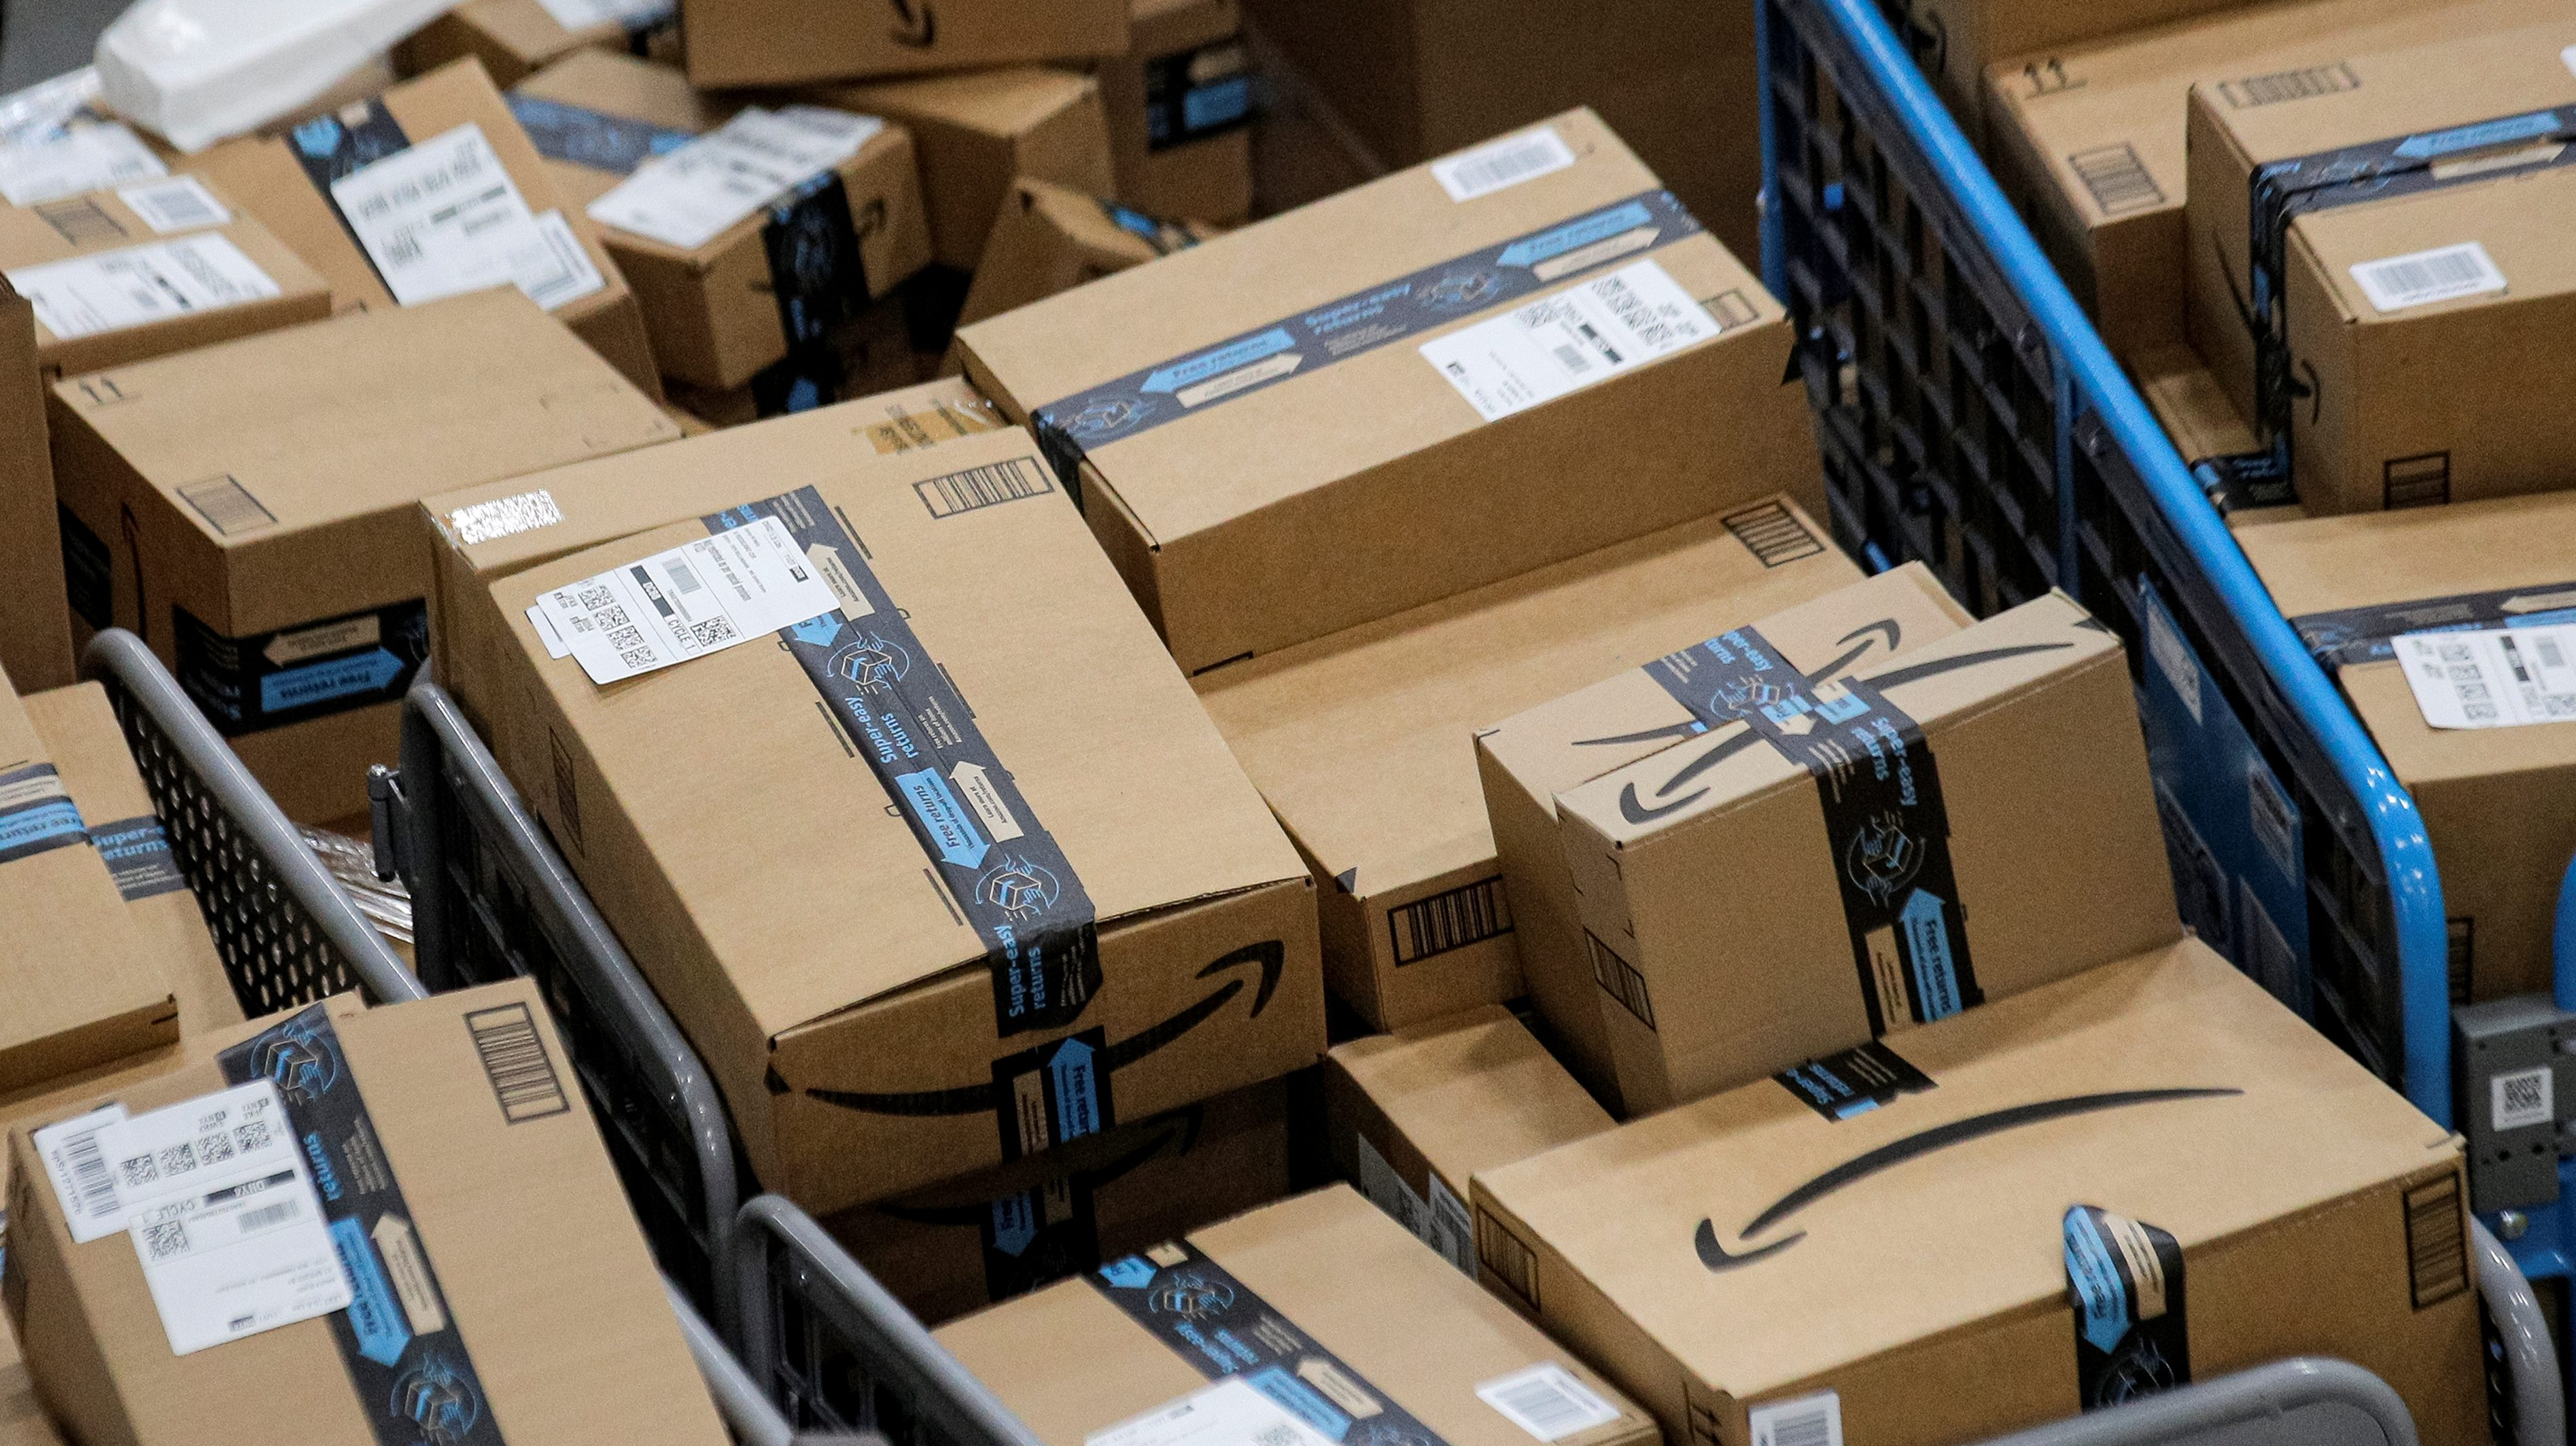 Packages inside an Amazon distribution center.